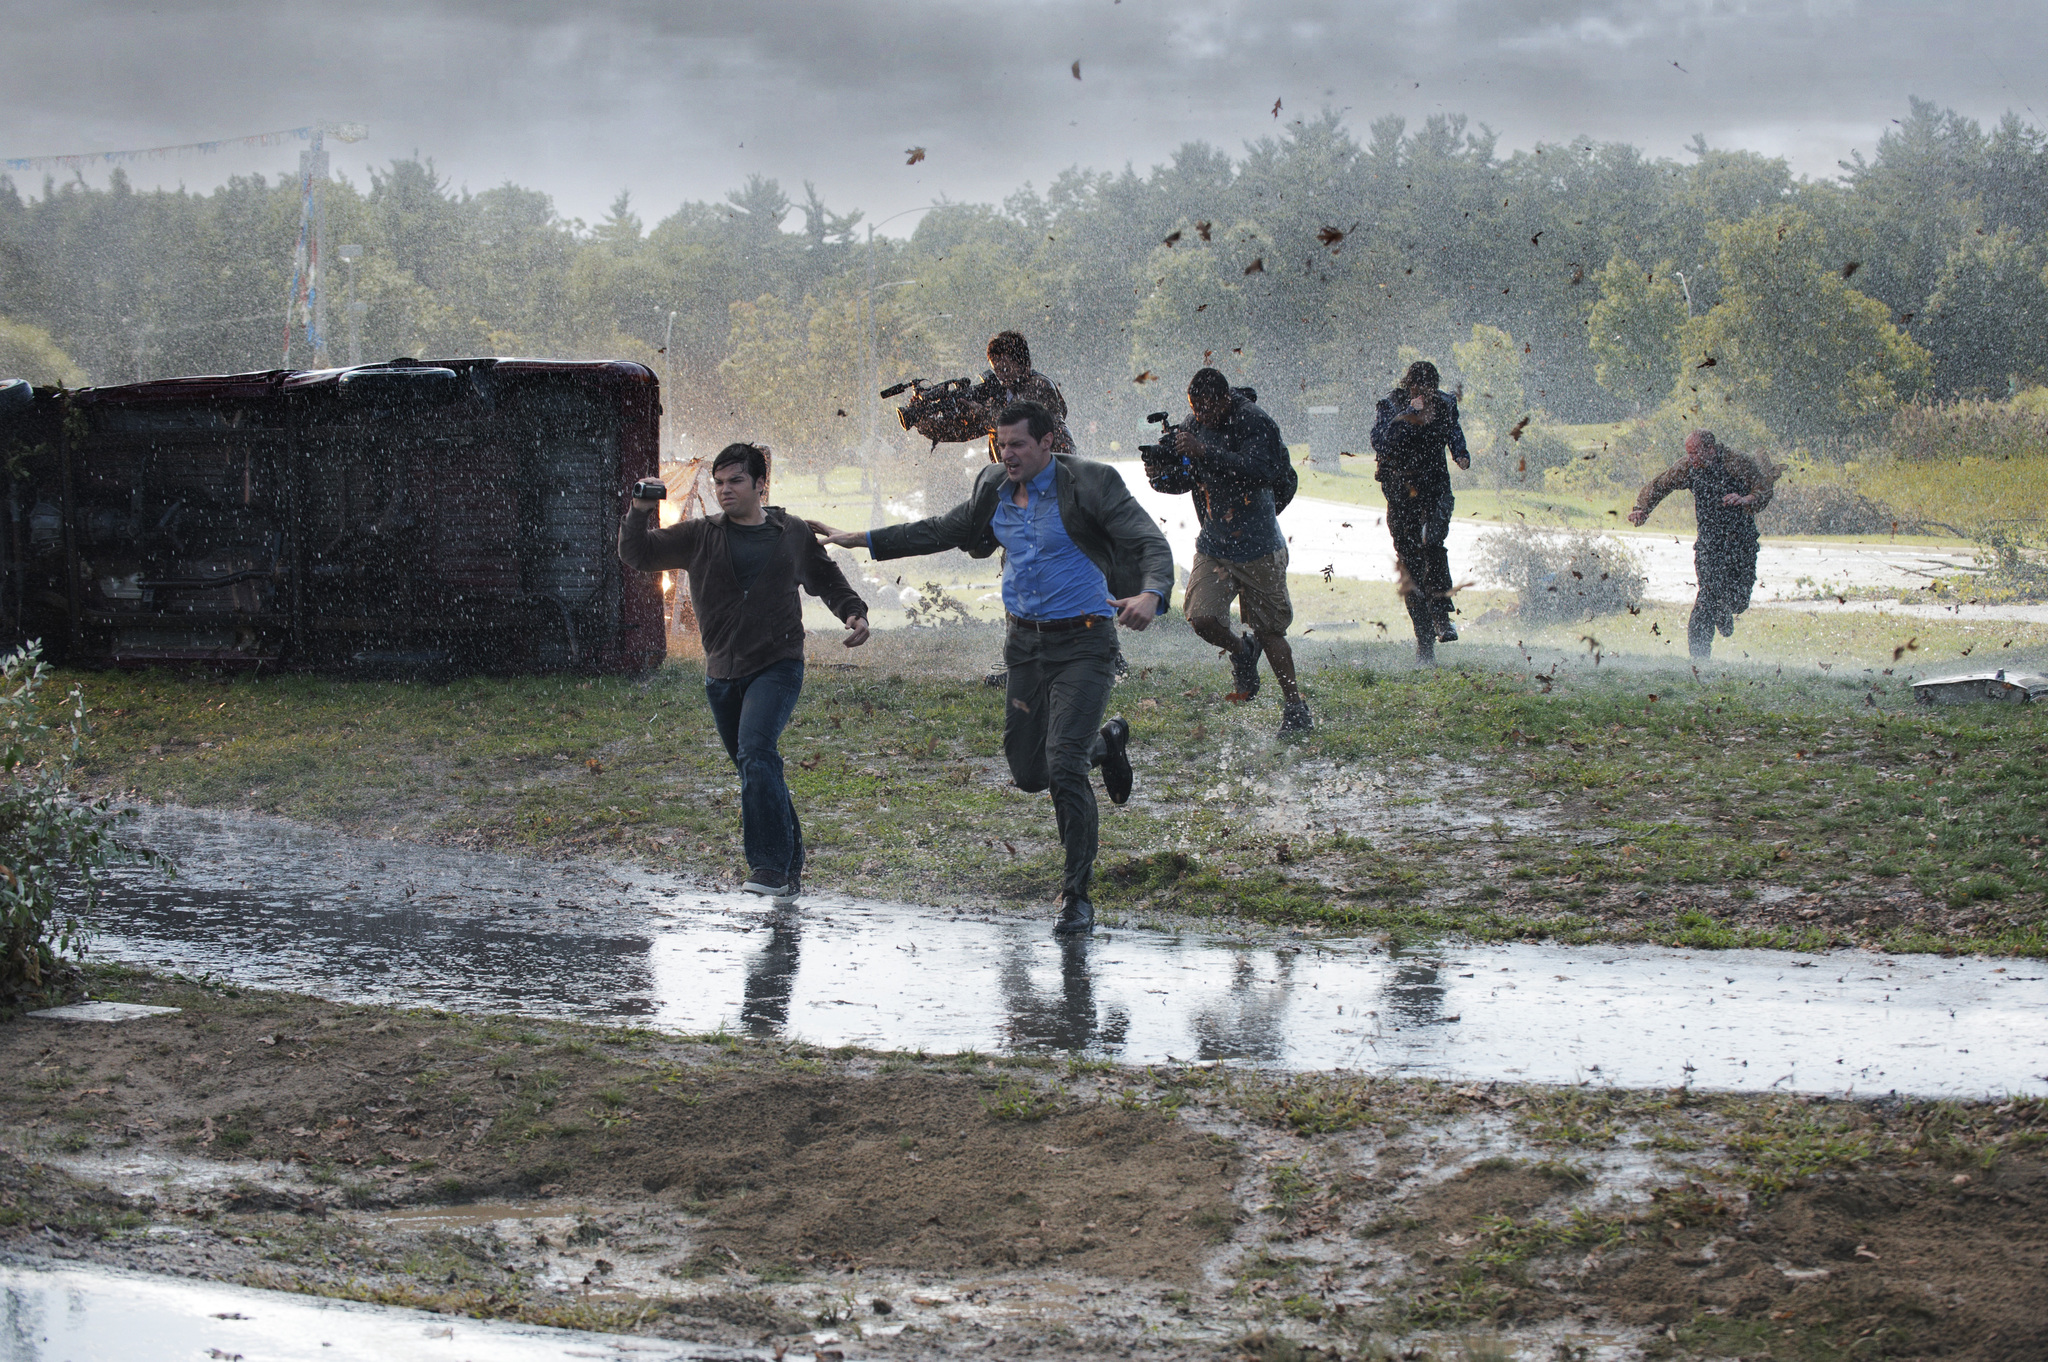 Richard Armitage, Arlen Escarpeta, Nathan Kress, Jeremy Sumpter, Matt Walsh, and Sarah Wayne Callies in Into the Storm (2014)